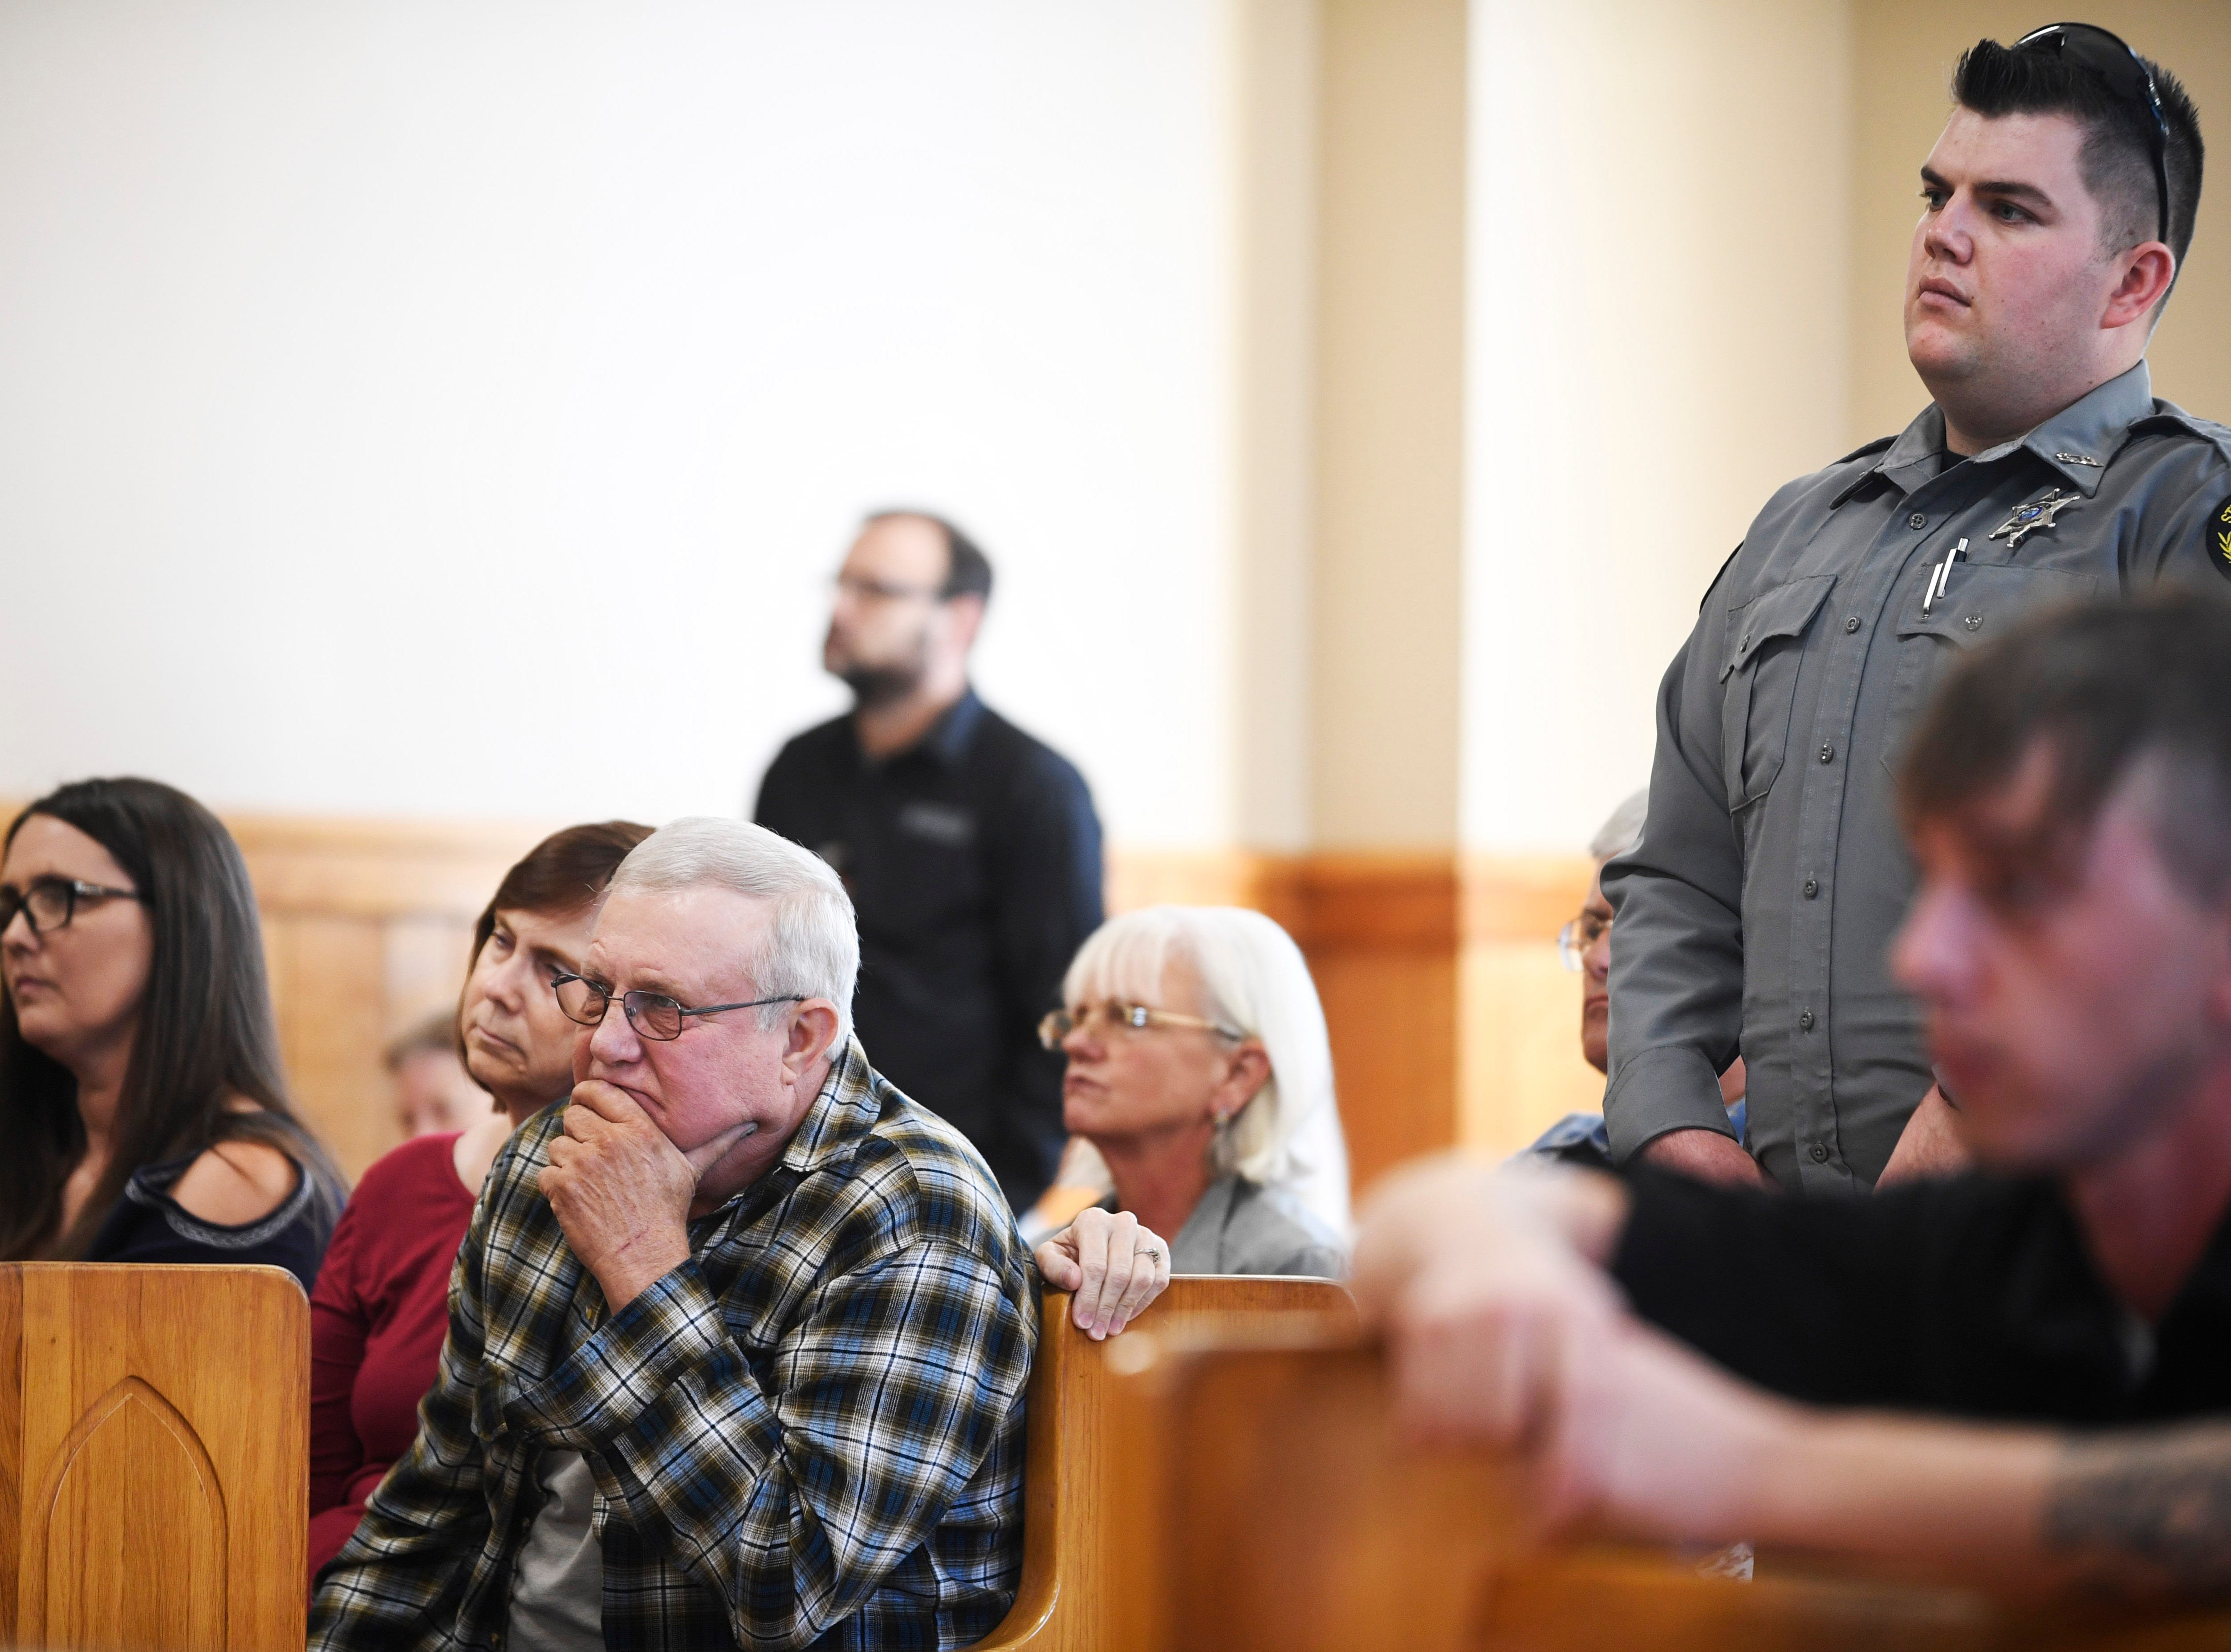 People gather in the courtroom during Kirby Wallace's preliminary hearing for charges including the killing of Indian Mound resident Brenda Smith at the Stewart County Courthouse Tuesday, Nov. 6, 2018, in Dover, Tenn. Wallace, 53, was caught Oct. 5 following a seven-day manhunt that expanded into Montgomery County.